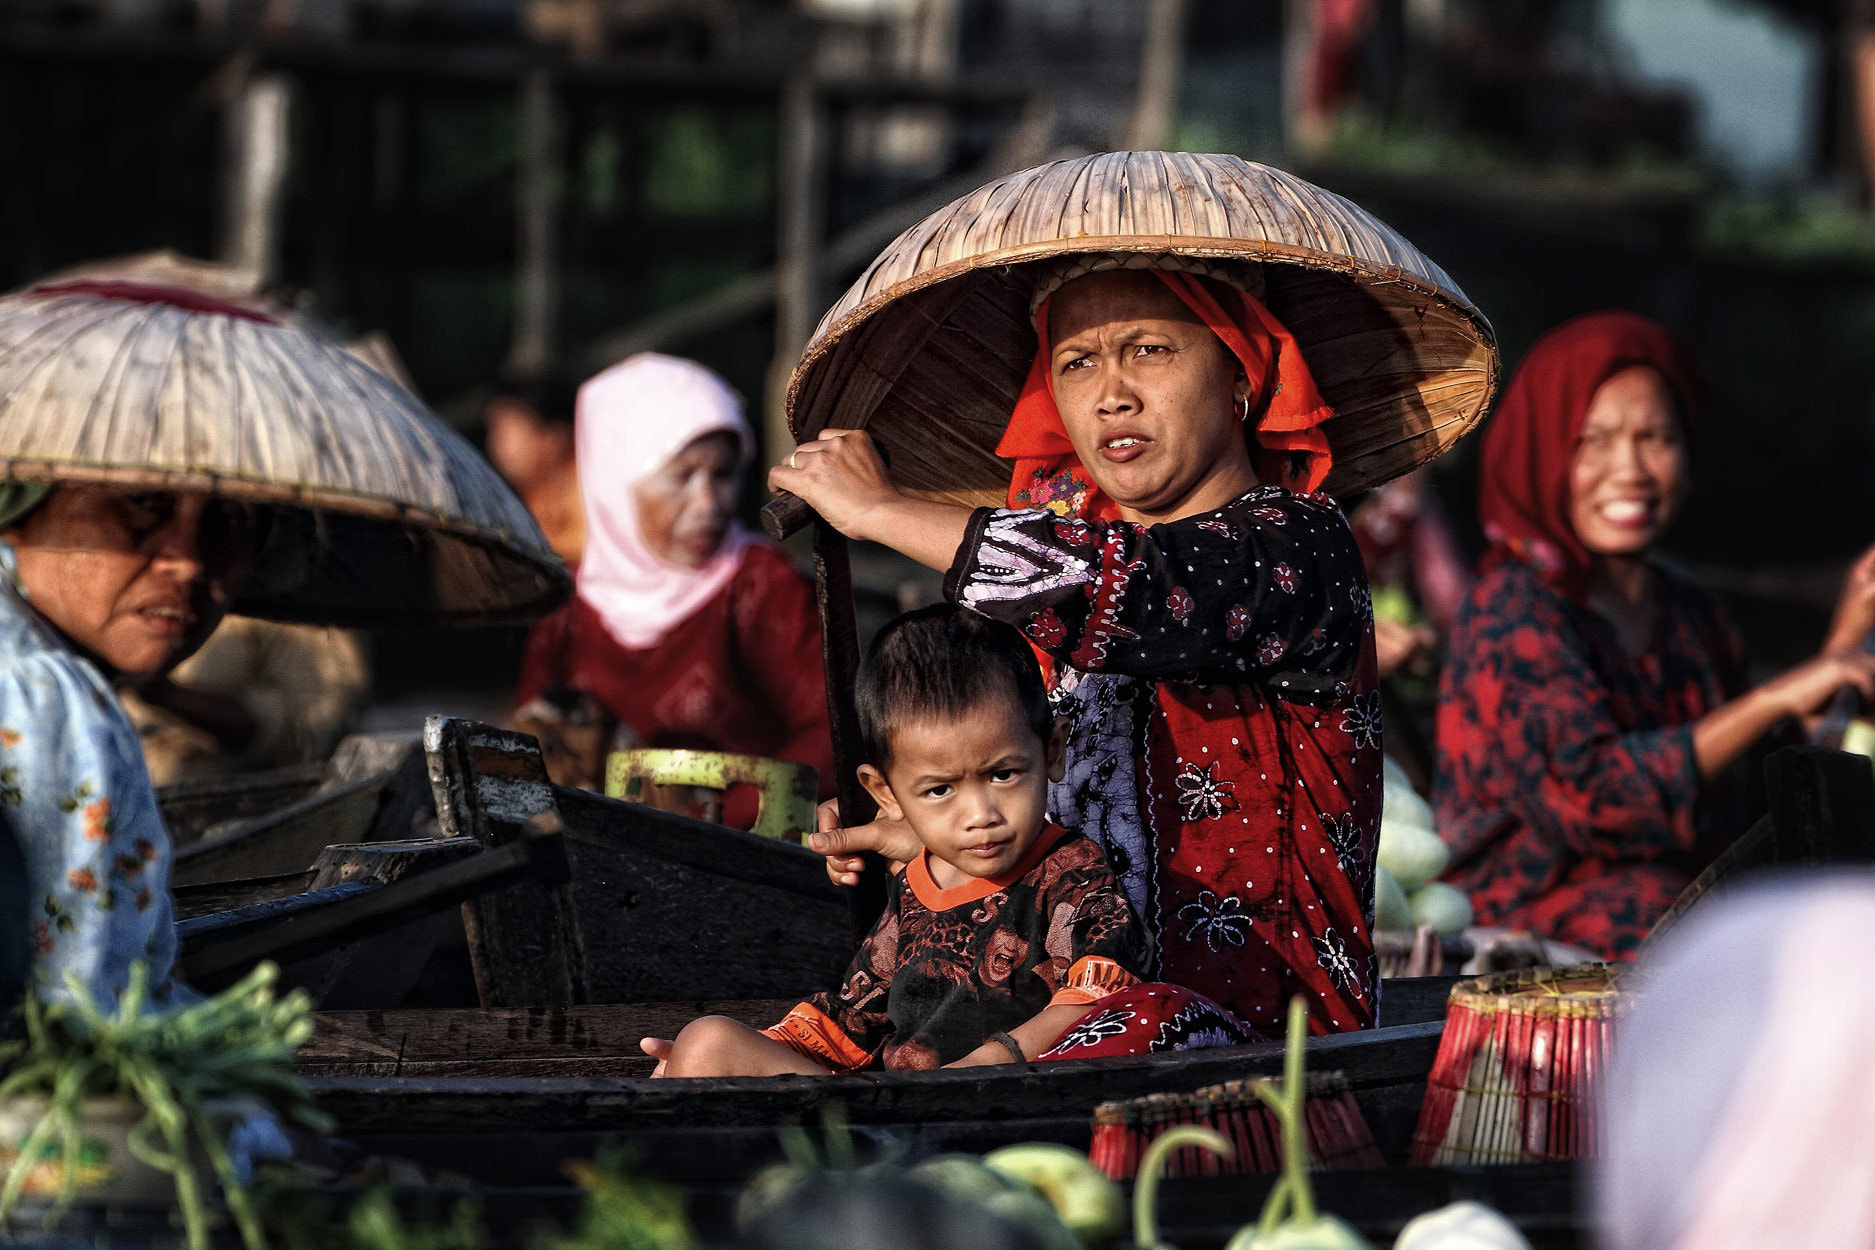 Photograph accompanied mother to work lb#4_49 by tt sherman on 500px